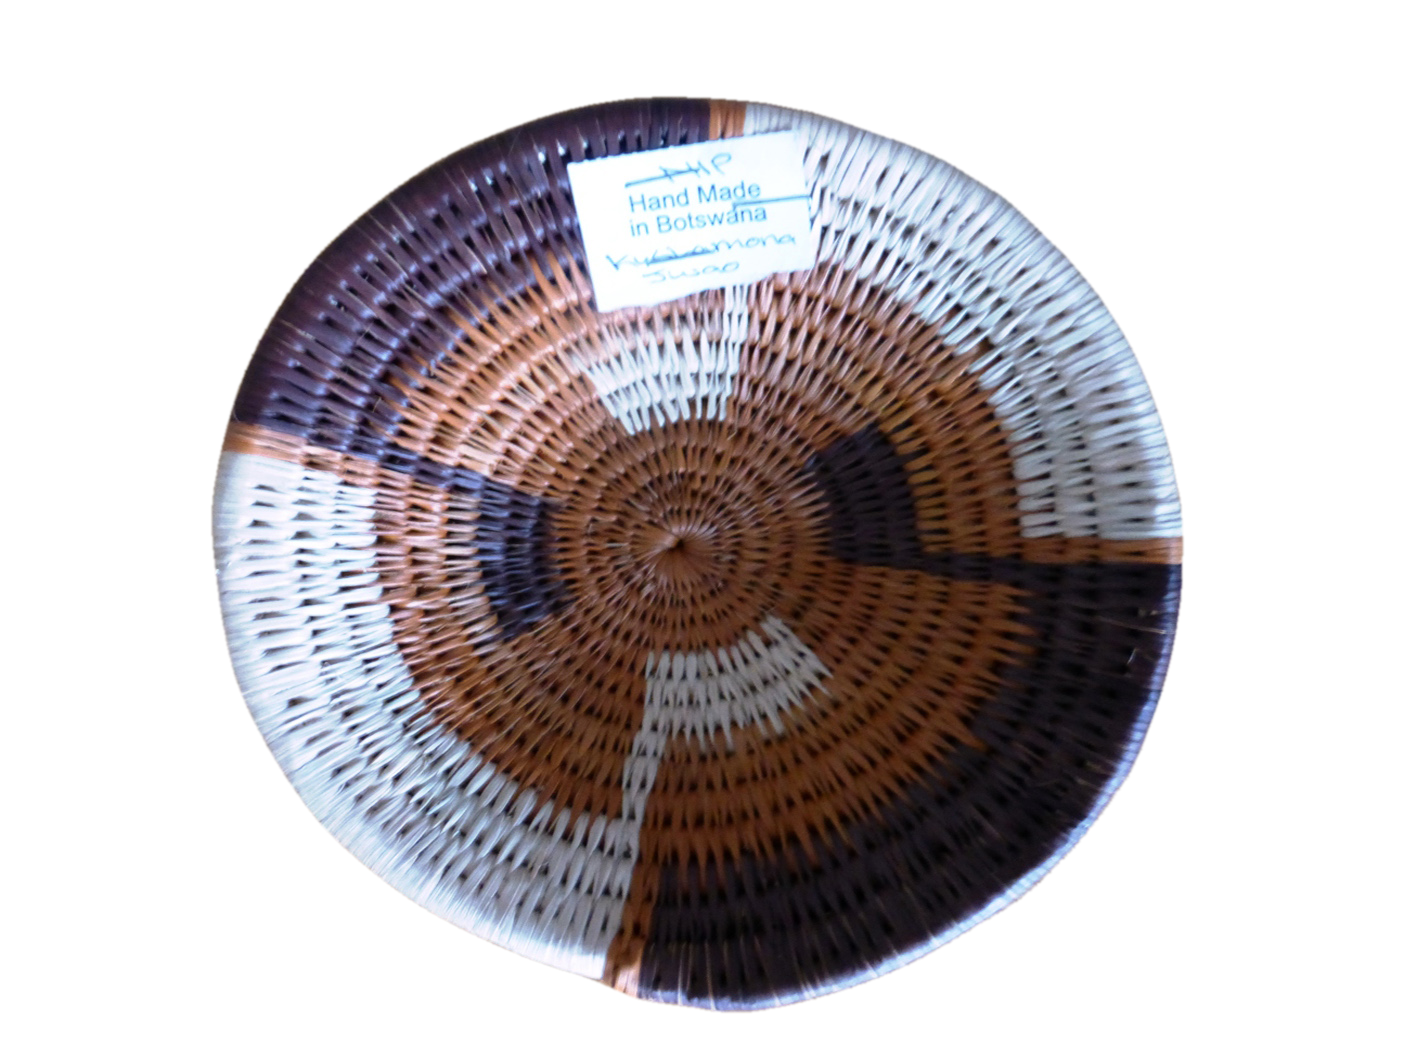 woven basket, African. Size small